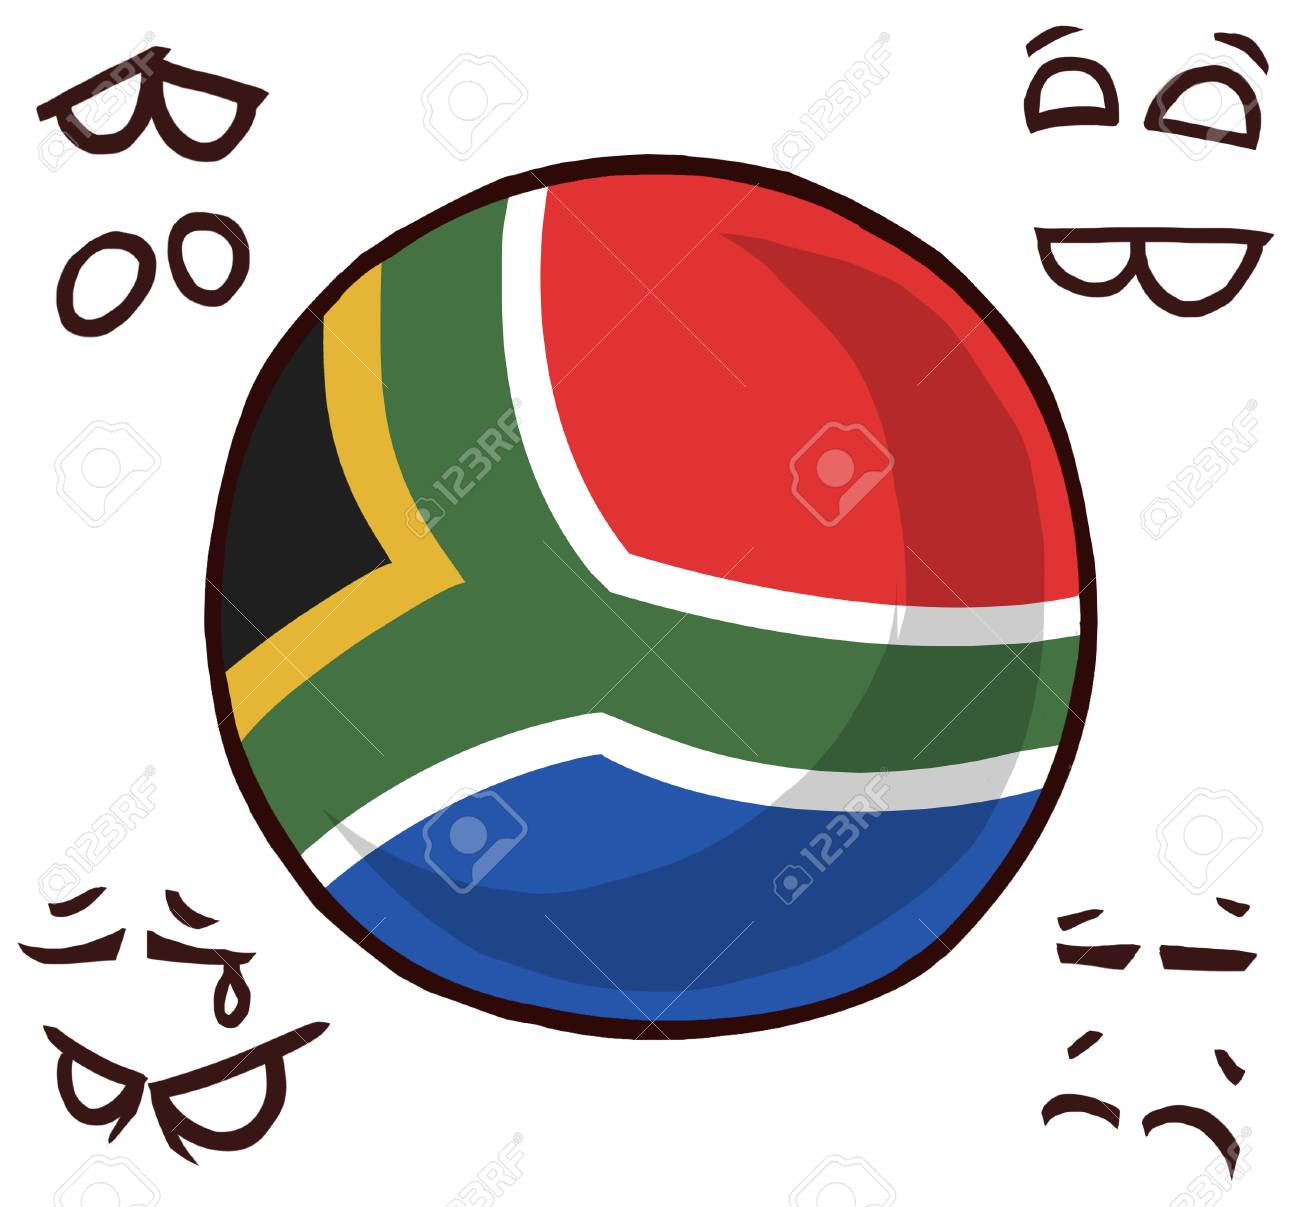 South Africa country ball - 110841534